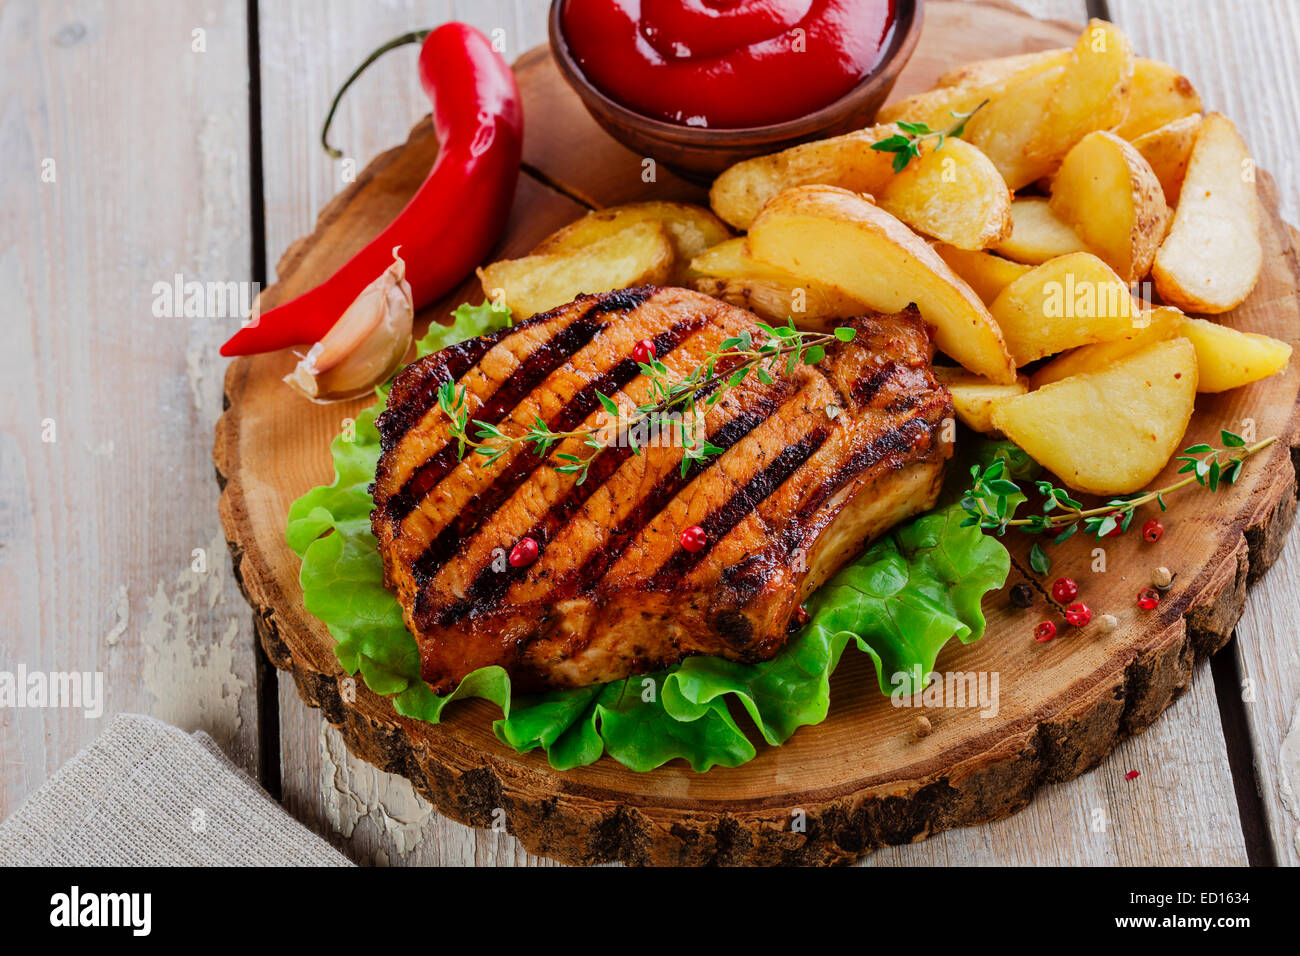 Grilled steak on the bone with potatoes - Stock Image